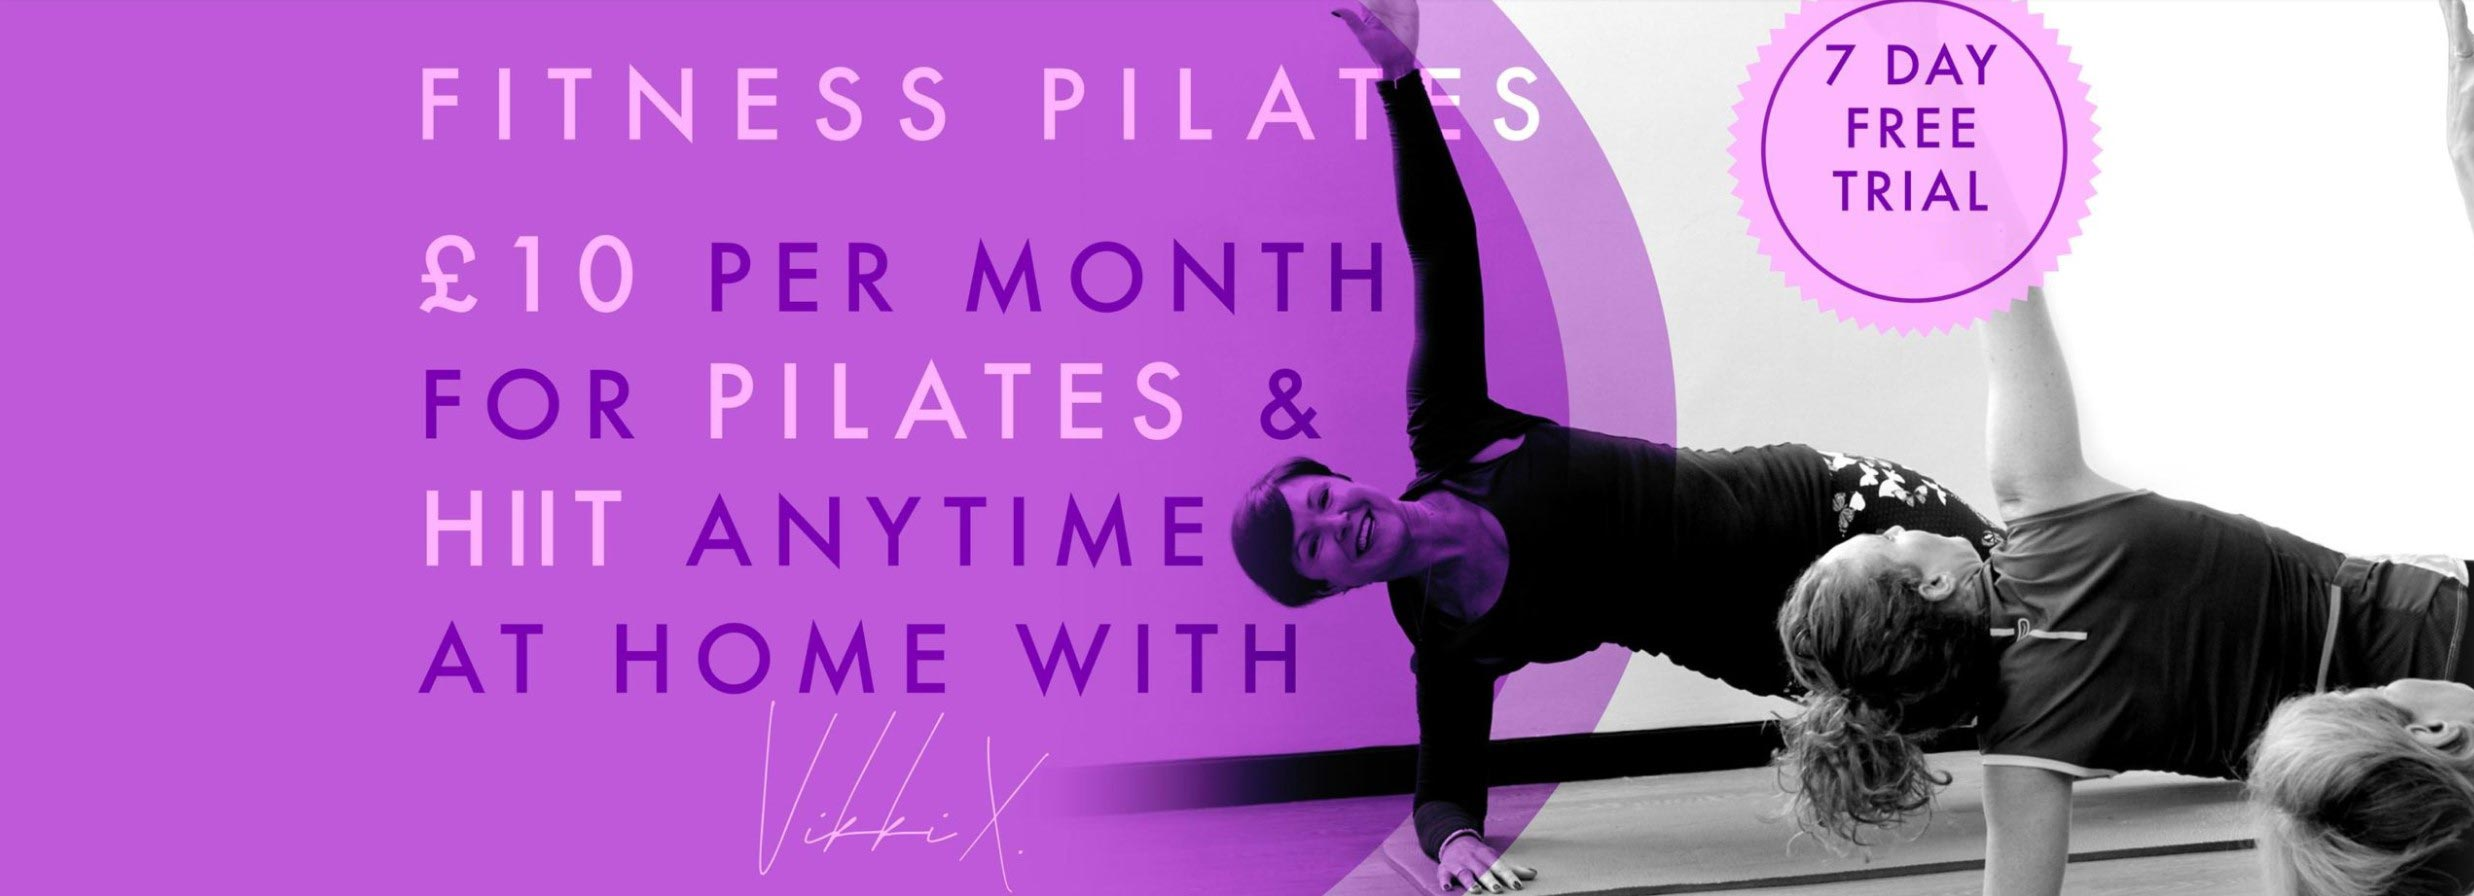 vikki davis fitness 7 day trial online pilates and cardio hiit